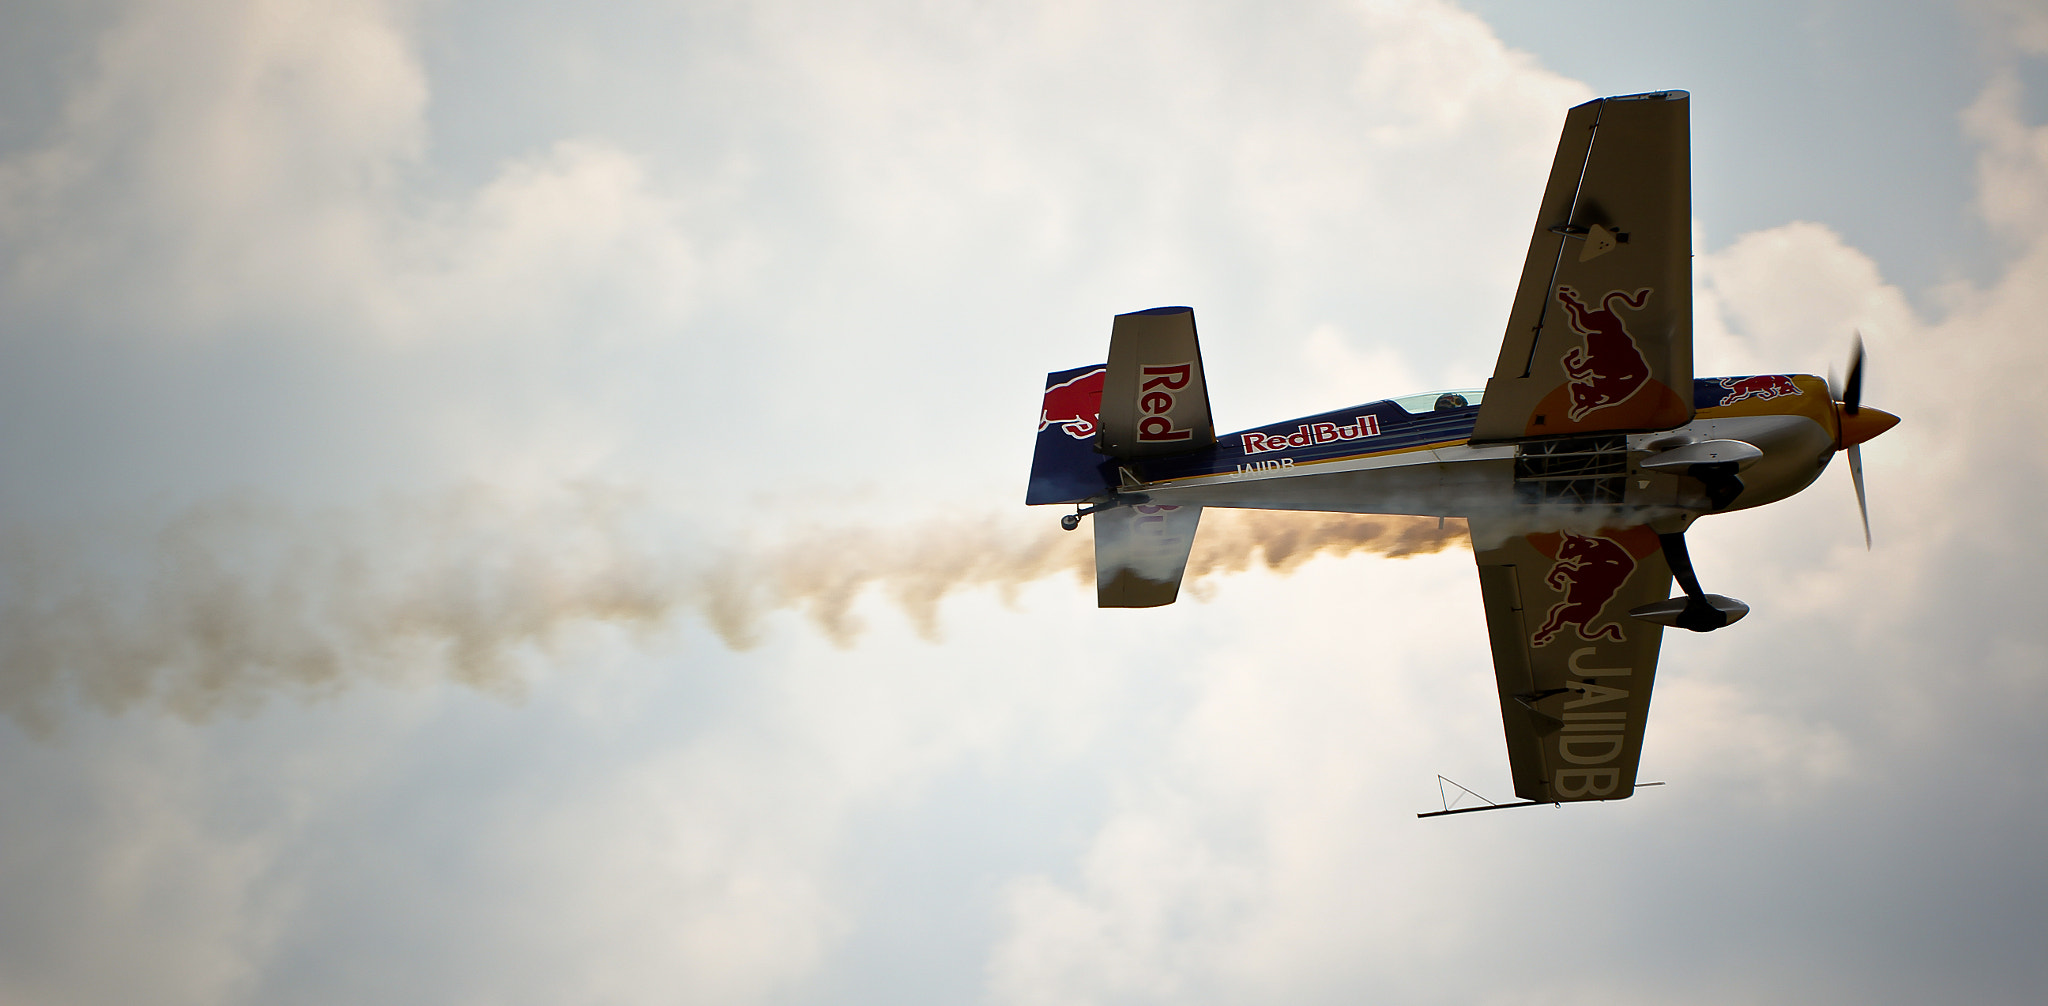 Photograph Flying red bull by Jinsoo Park on 500px